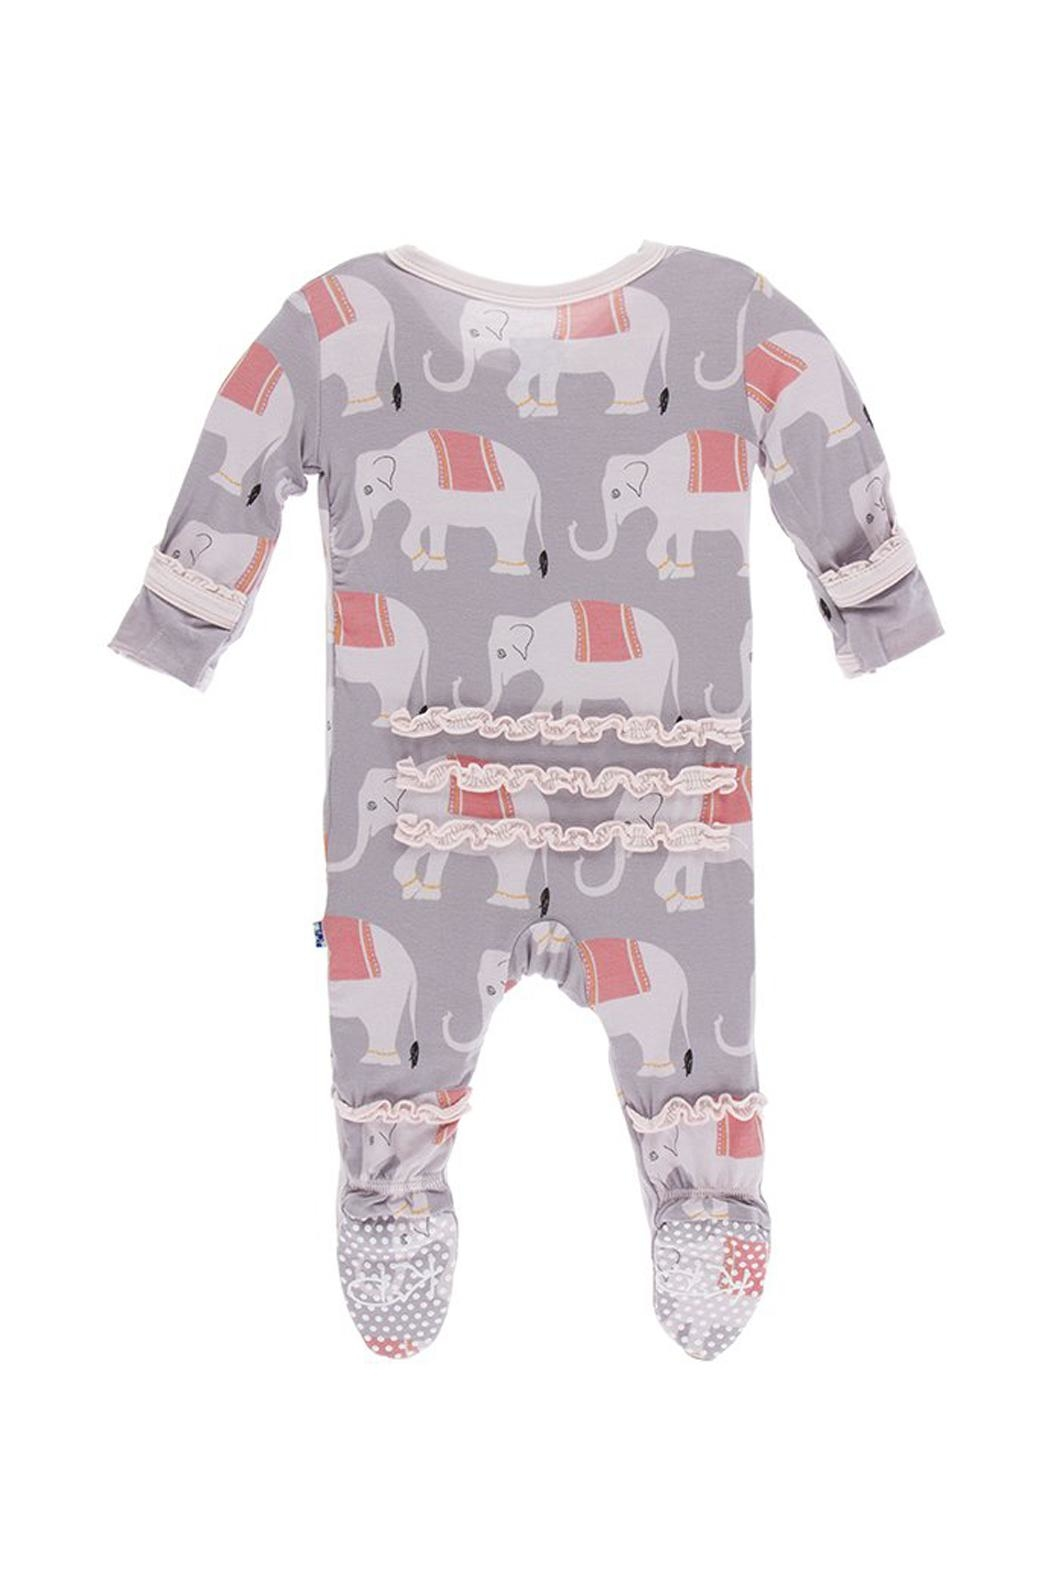 Kickee Pants Toddler Elephant Ruffle-Footie - Front Full Image